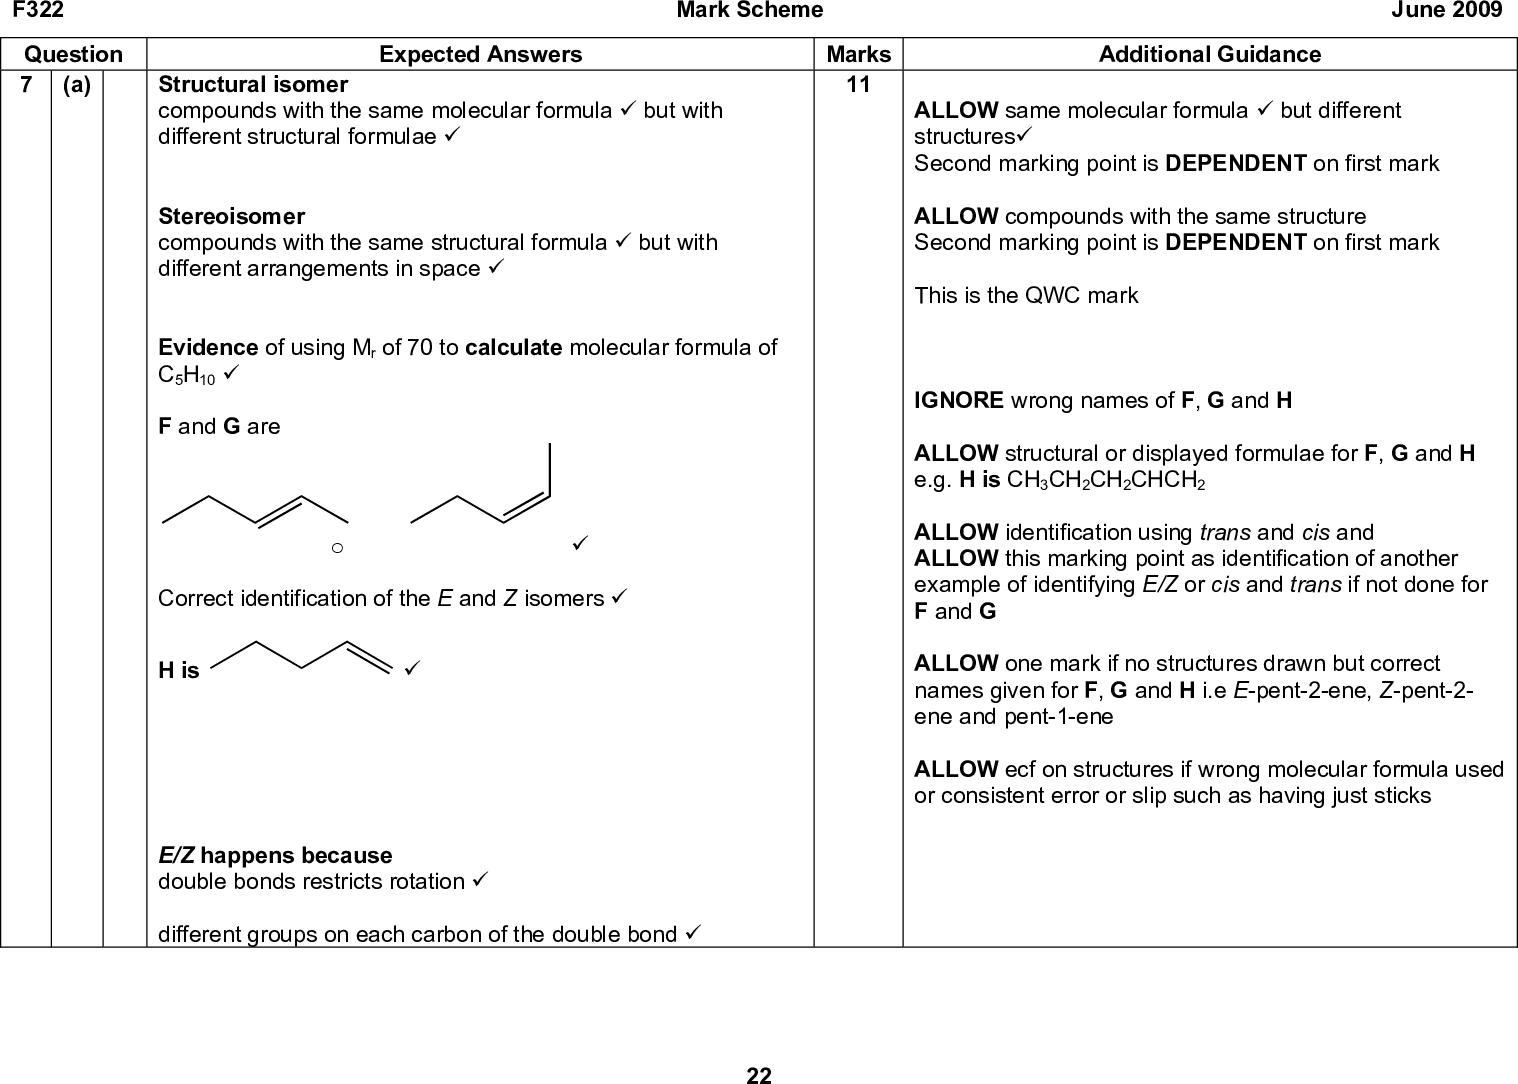 F322 Question 7 (a) Structural isomer Expected Answers Mark Scheme June 2009 Marks 11 Additional Guidance ALLOW same molecular formula (cid:57) but different structures(cid:57) Second marking point is DEPENDENT on first mark ALLOW compounds with the same structure Second marking point is DEPENDENT on first mark This is the QWC mark IGNORE wrong names of F, G and H ALLOW structural or displayed formulae for F, G and H e.g. H is CH3CH2CH2CHCH2 ALLOW identification using trans and cis and ALLOW this marking point as identification of another example of identifying E/Z or cis and trans if not done for F and G ALLOW one mark if no structures drawn but correct names given for F, G and H i.e E-pent-2-ene, Z-pent-2- ene and pent-1-ene ALLOW ecf on structures if wrong molecular formula used or consistent error or slip such as having just sticks compounds with the same molecular formula (cid:57) but with different structural formulae (cid:57) Stereoisomer compounds with the same structural formula (cid:57) but with different arrangements in space (cid:57) Evidence of using Mr of 70 to calculate molecular formula of C5H10 (cid:57) F and G are (cid:57) (cid:57) Correct identification of the E and Z isomers (cid:57) H is E/Z happens because double bonds restricts rotation (cid:57) different groups on each carbon of the double bond (cid:57) 22<br />  F322 Question (b) Marks Expected Answers : 15.69 16.0 70.59 12.0 13.72 : 1.0 from IR absorption, J contains OH OR from IR J is an alcohol(cid:57) C : H : O = OR 5.8825 : 13.72 : 0.9806 (cid:57) empirical formula = C6H14O (cid:57) (from mass spectrum), Mr = 102 (cid:57) evidence that it has been shown that the empirical formula is the molecular formulae e.g. Mr of C6H14O = 102 so empirical formula is molecular formula (cid:57) OH OH OH One mark for each correct structure (cid:57) (cid:57) (cid:57) Total 19 23 Mark Scheme June 2009 Additional Guidance This is a QWC mark ALLOW two marks for correct empirical formula with no working out 